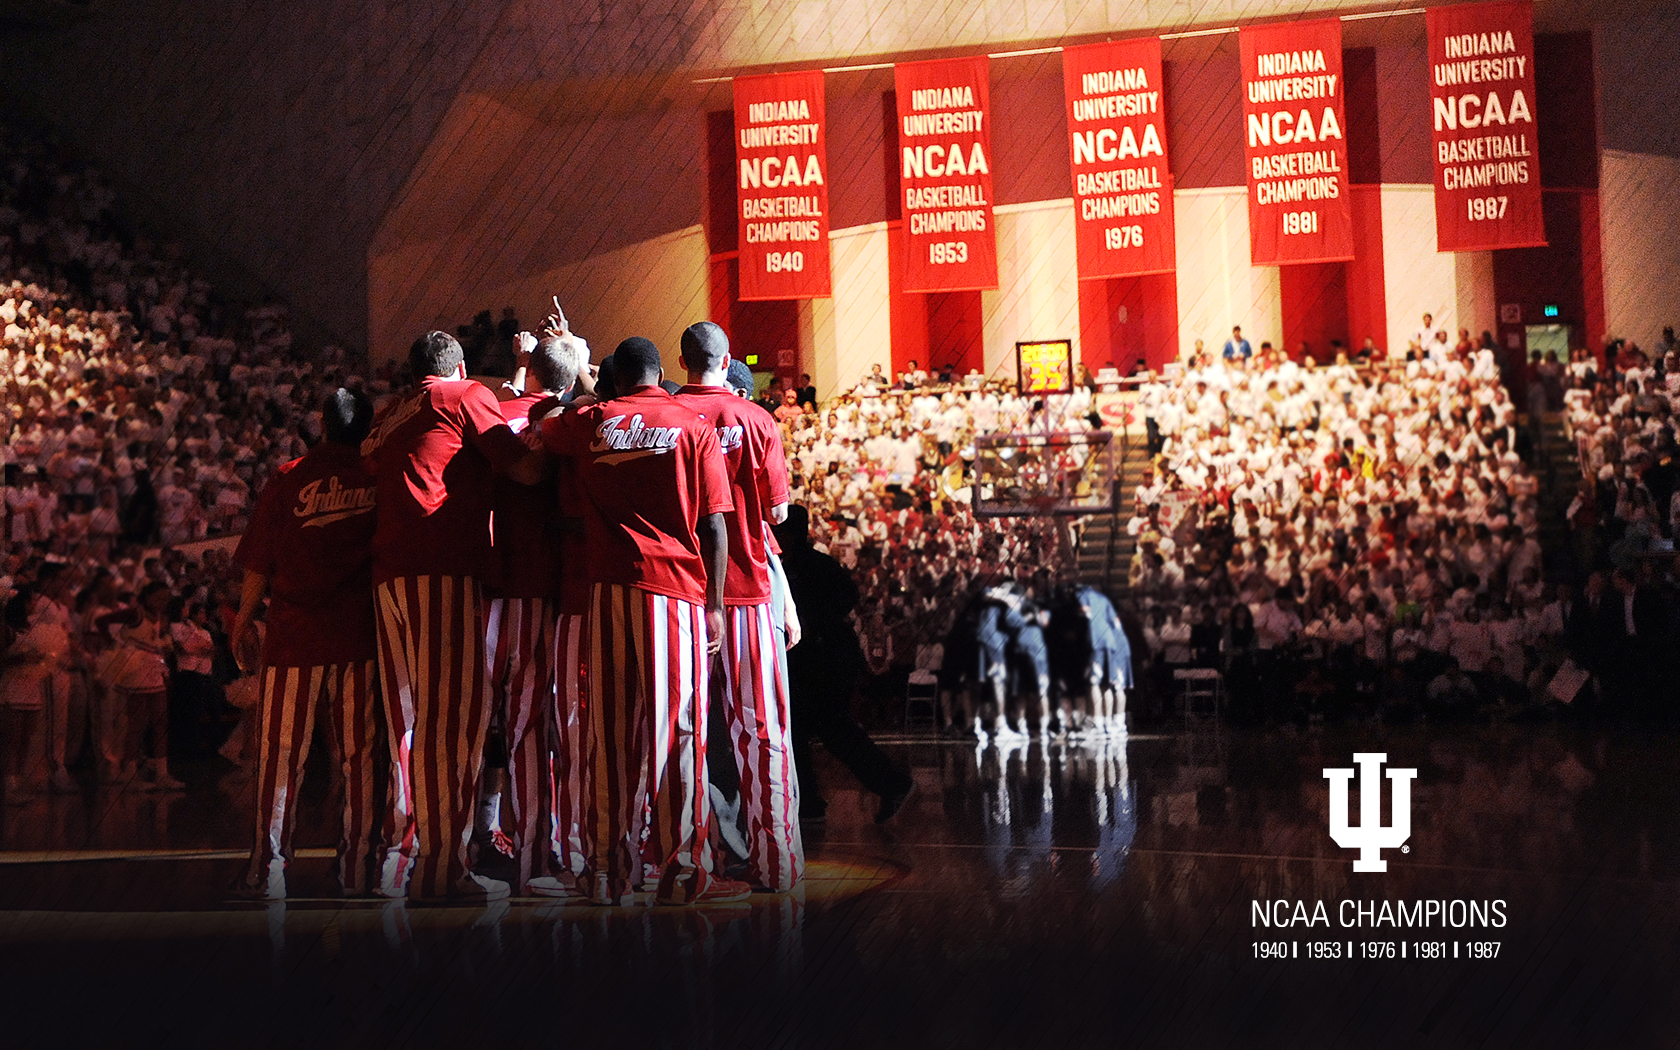 indiana university the basketball team went undefeated my senior year 1680x1050